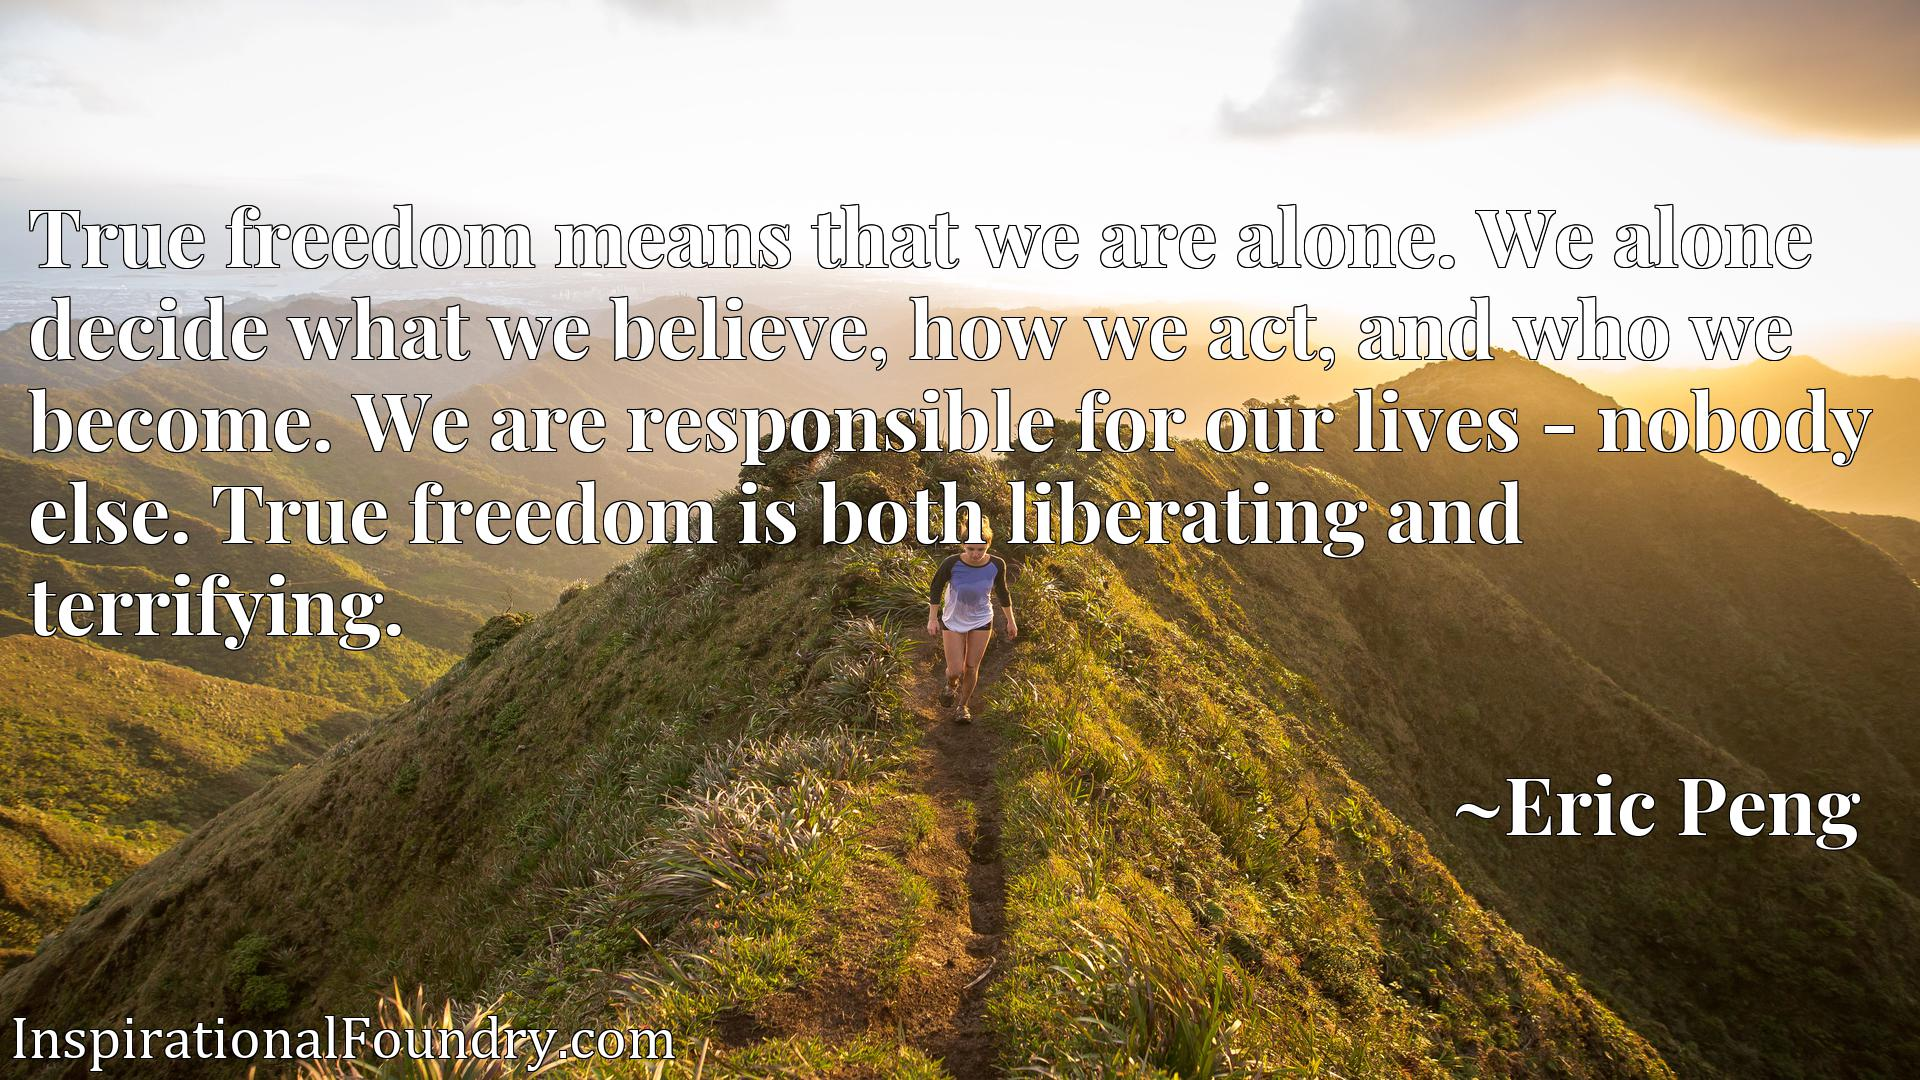 True freedom means that we are alone. We alone decide what we believe, how we act, and who we become. We are responsible for our lives - nobody else. True freedom is both liberating and terrifying.